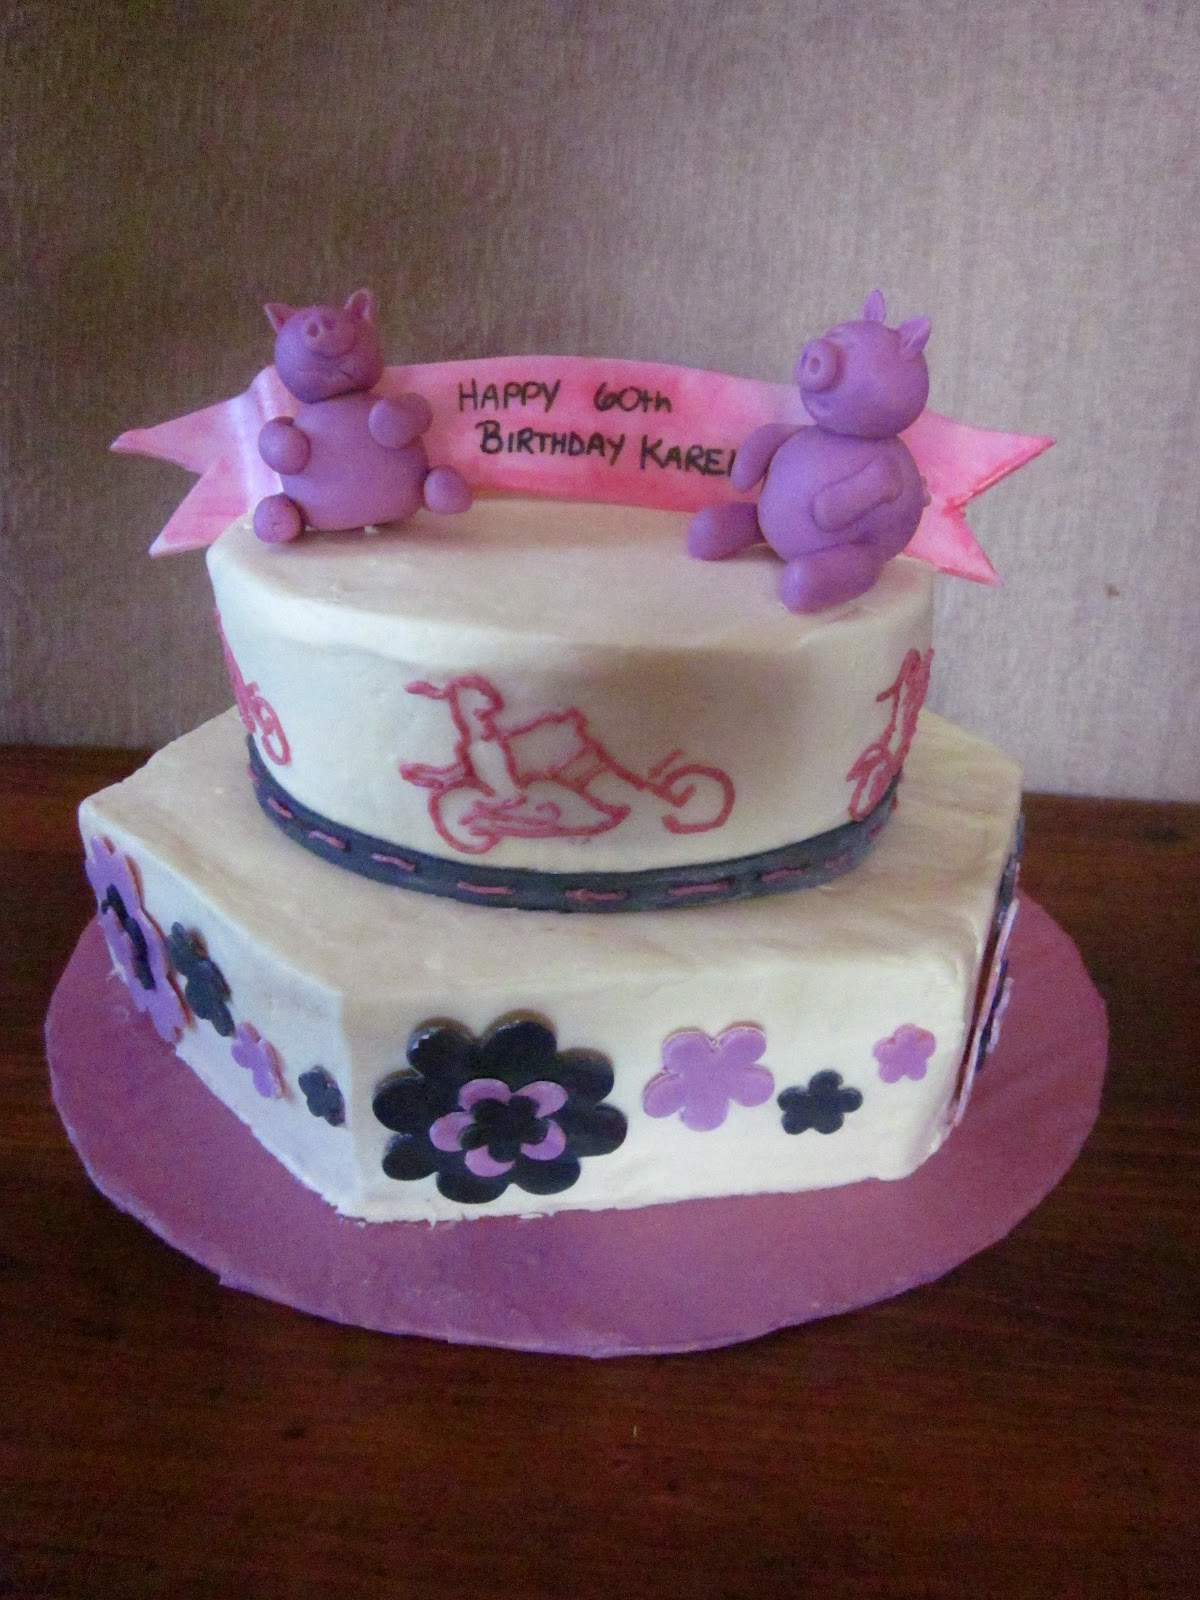 Second Generation Cake Design Biker Chick And Pigs Pink